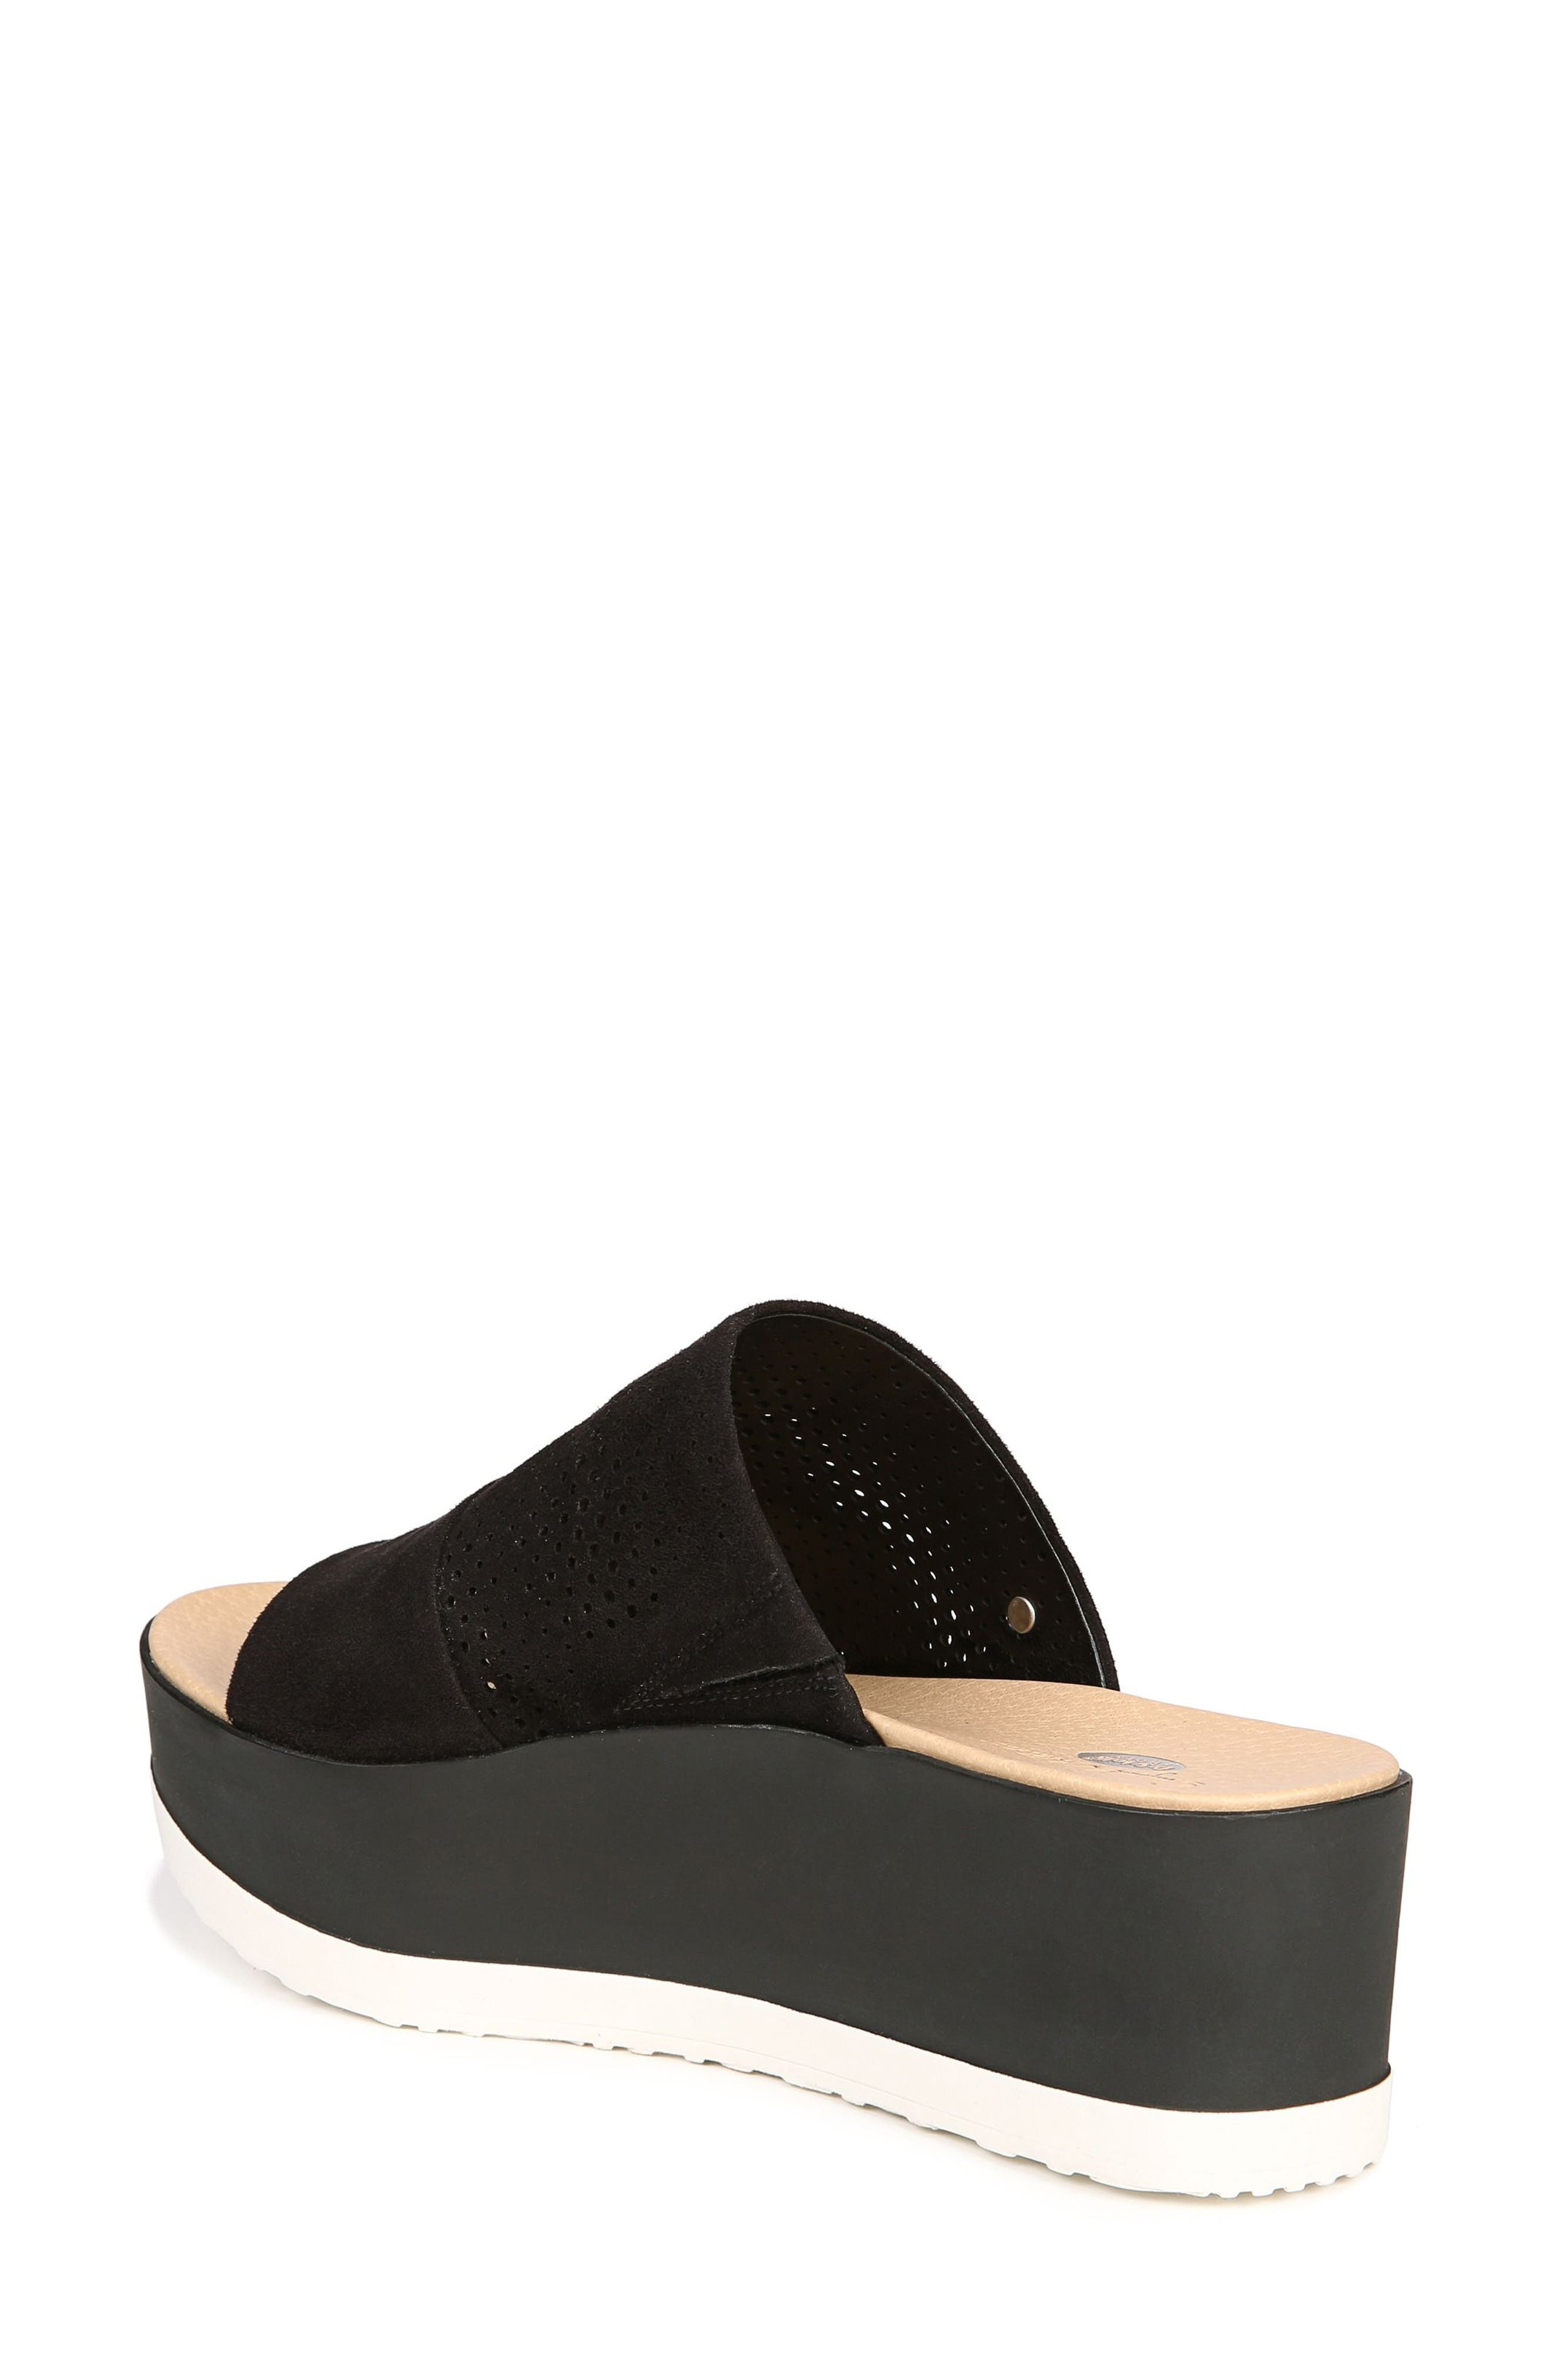 Collins Platform Sandal,                             Alternate thumbnail 2, color,                             BLACK FABRIC